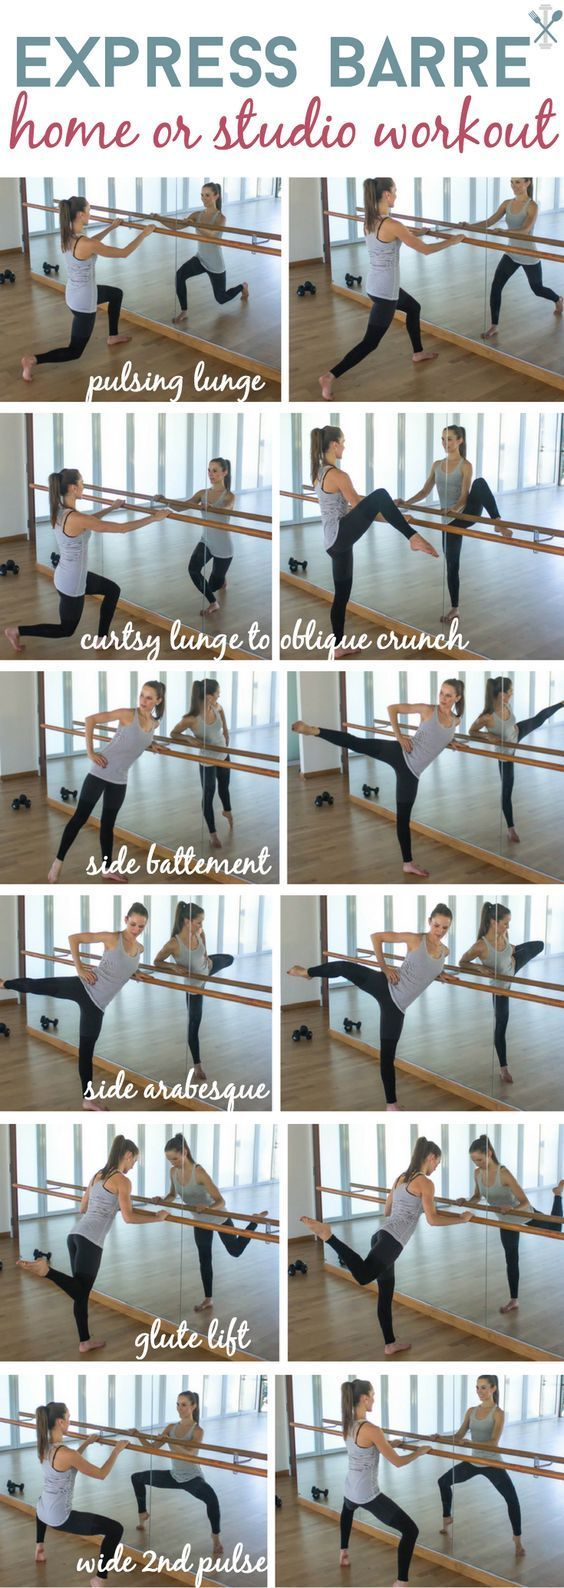 10 Minute Express Barre Workout